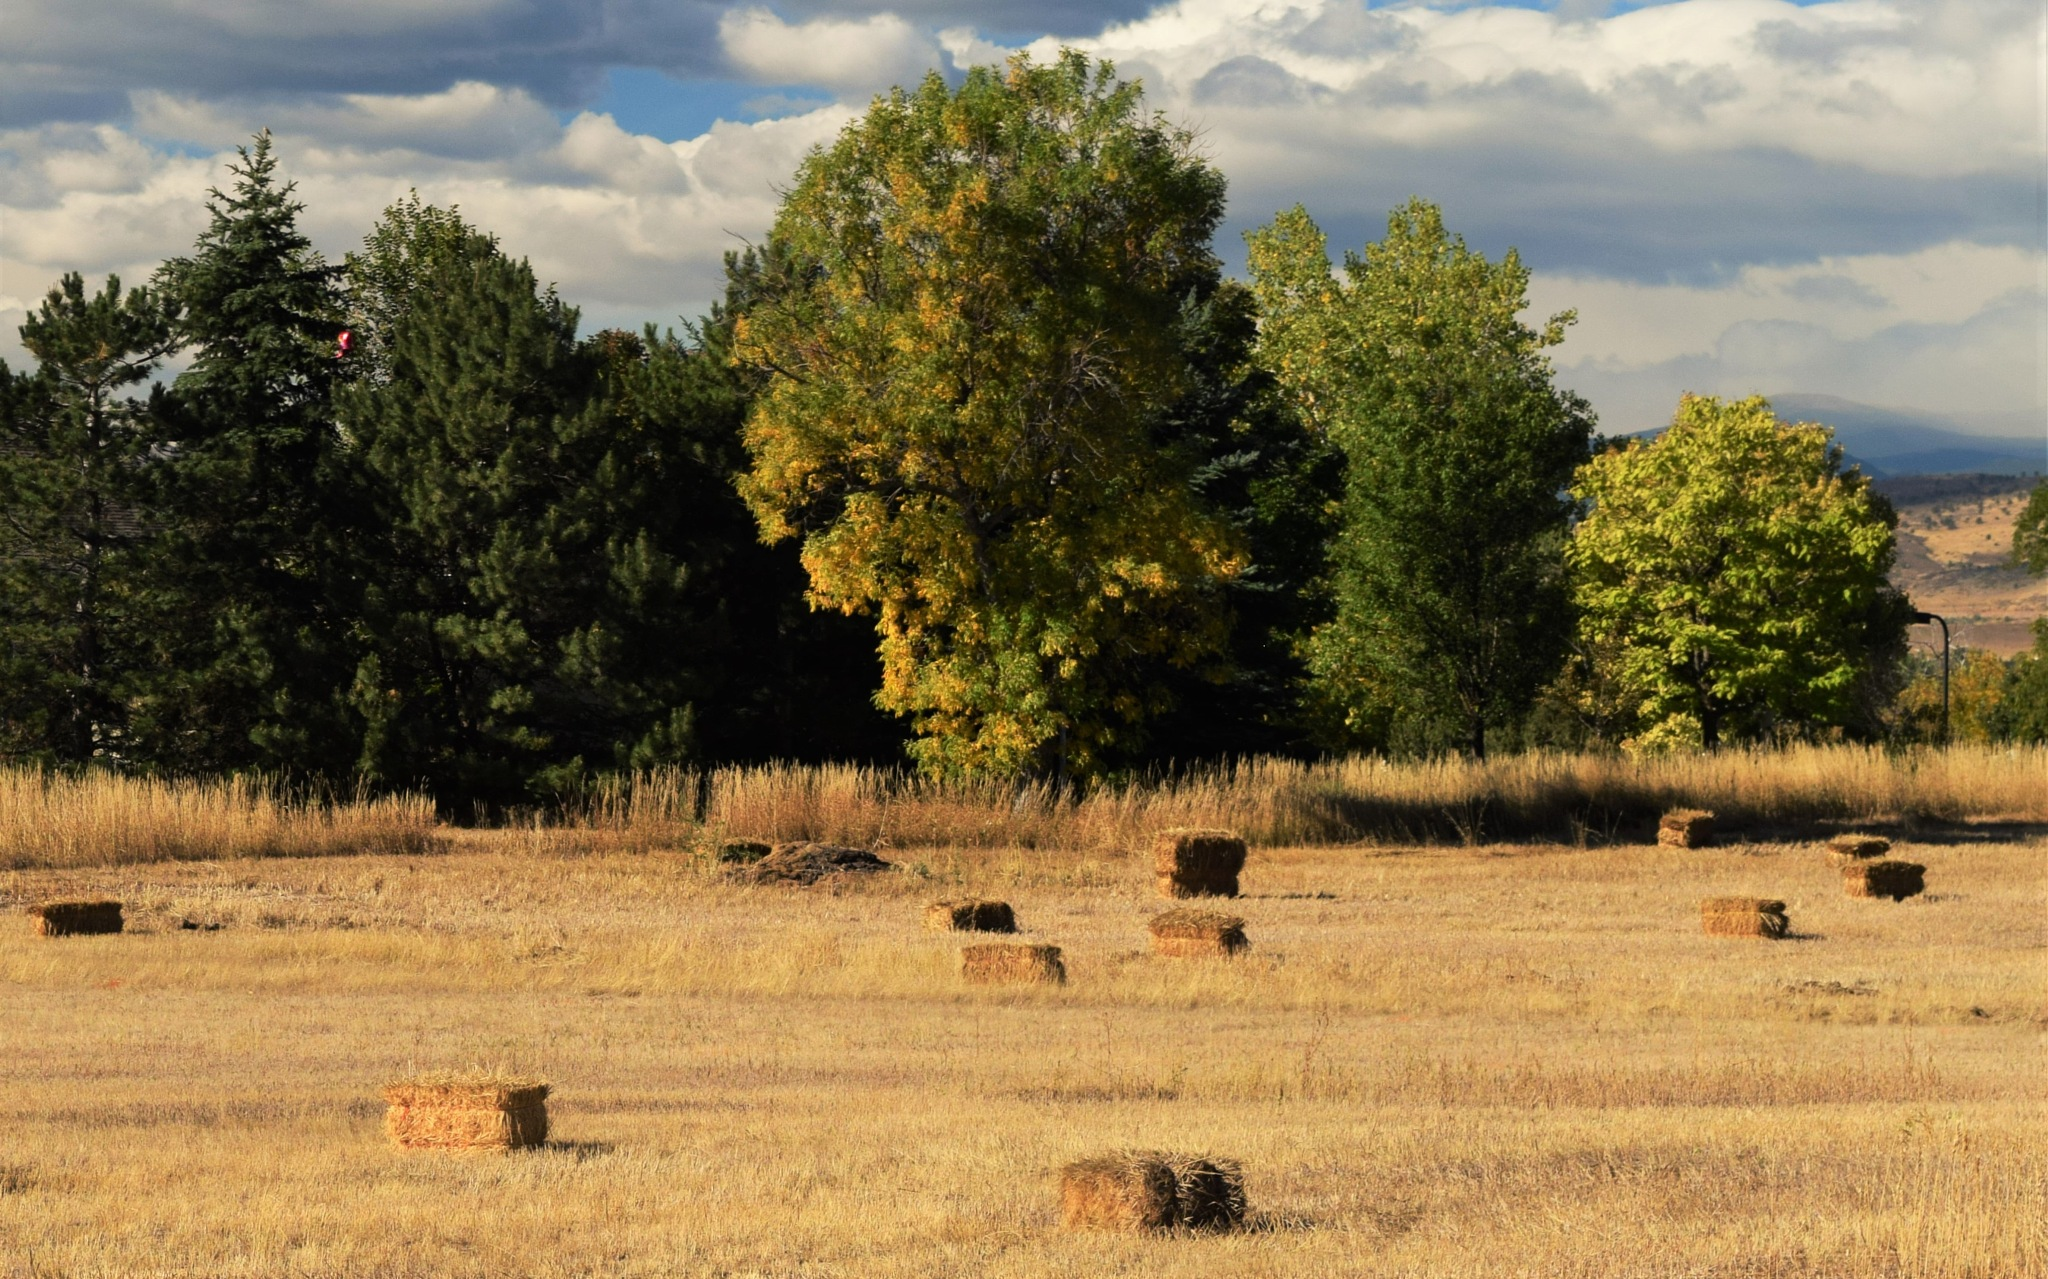 Drying hay bales by maria.telegdy